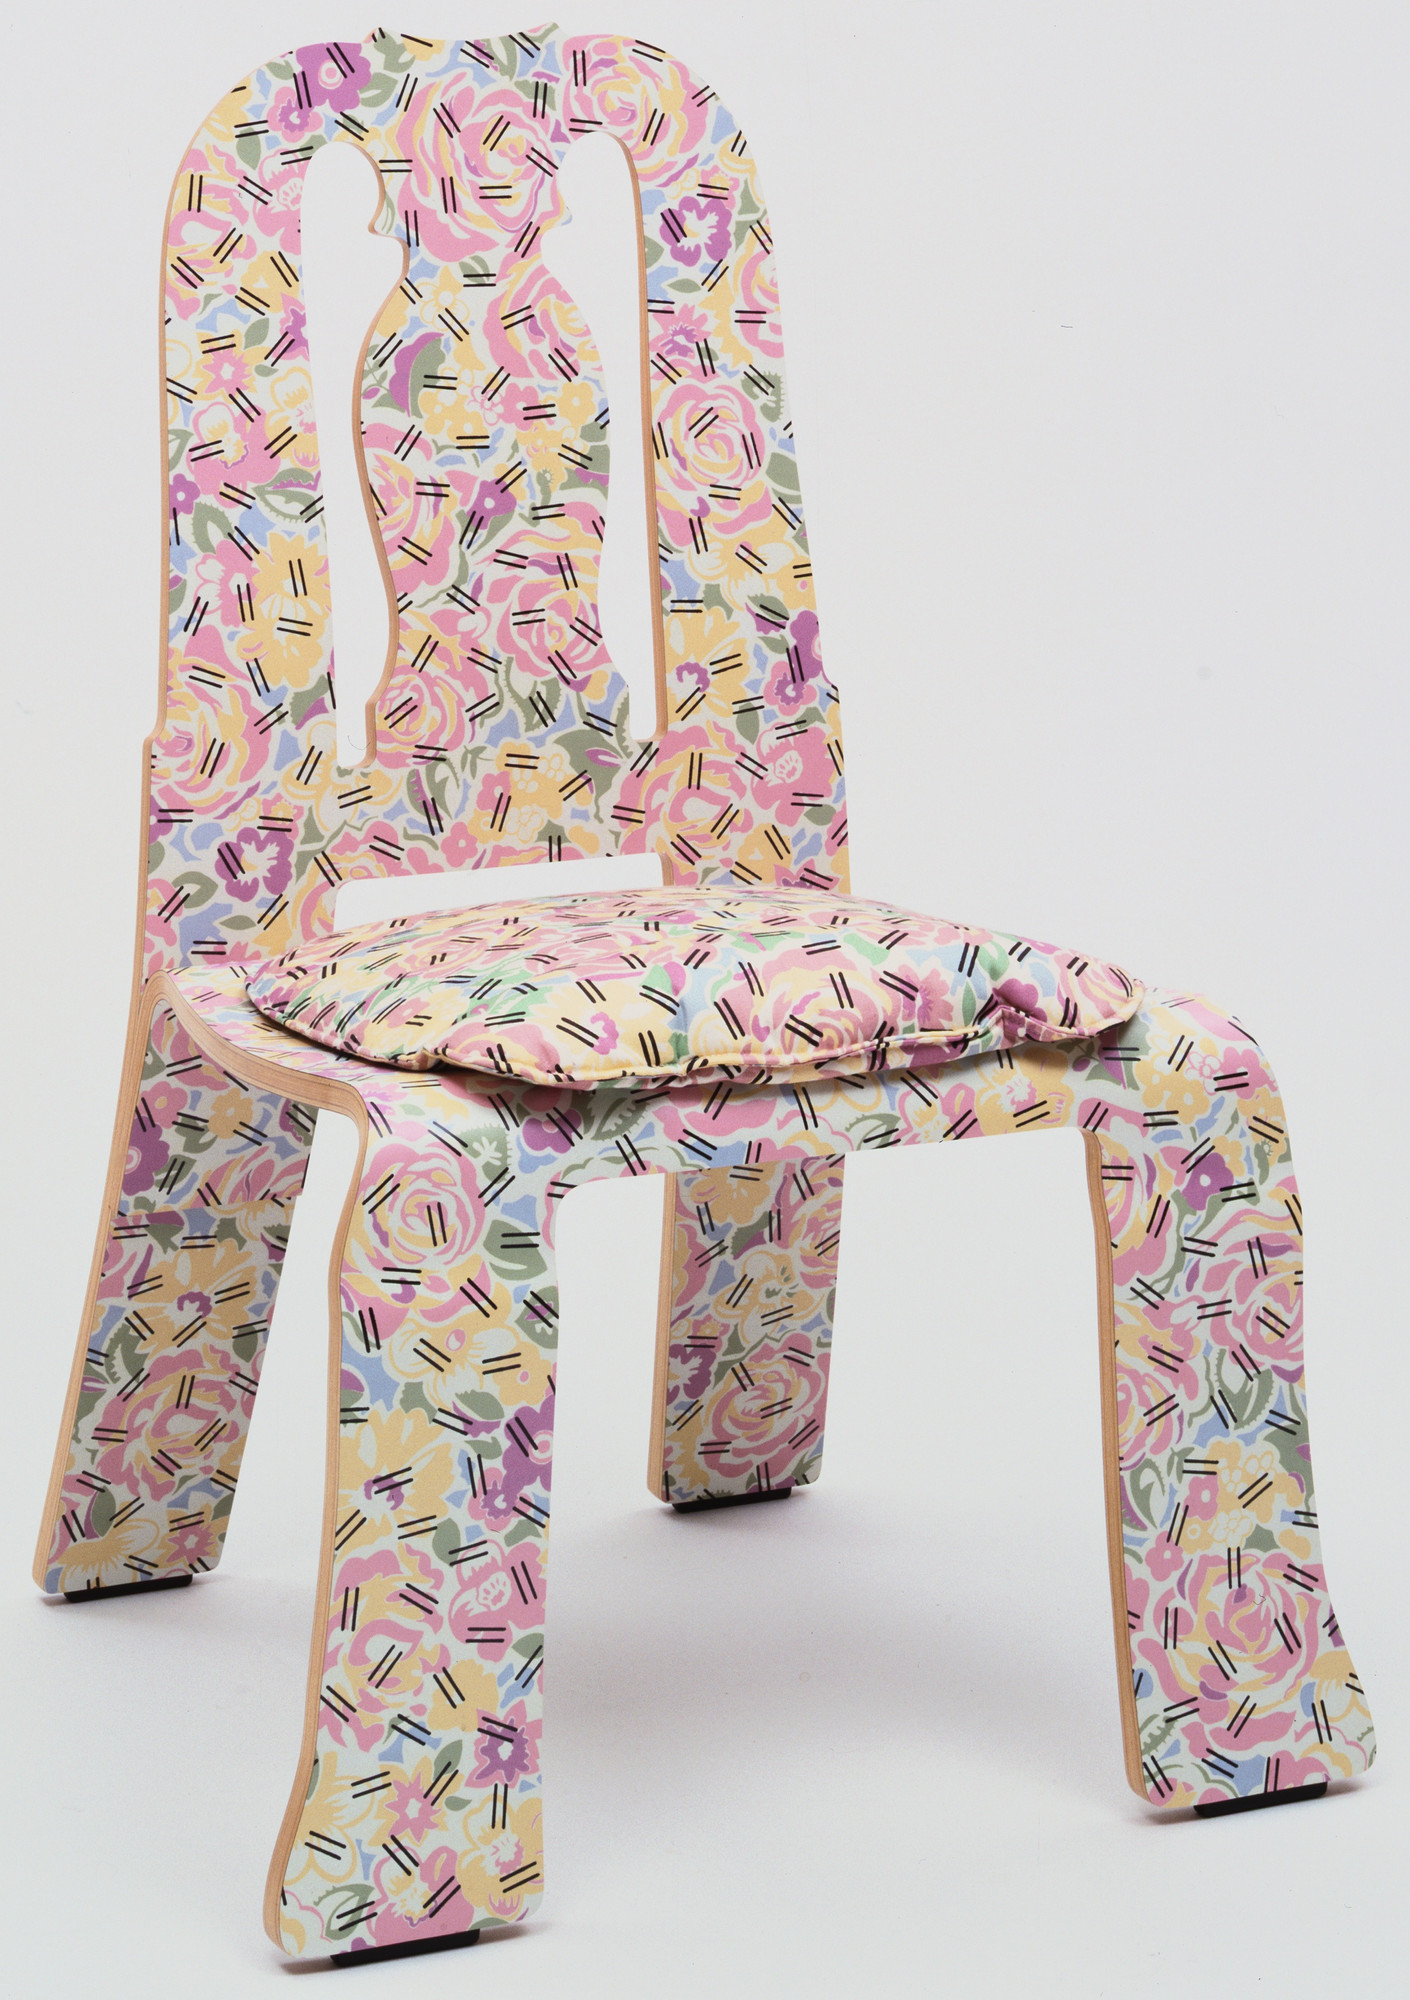 Robert Venturi Denise Scott Brown Queen Anne Side Chair 1983 Moma